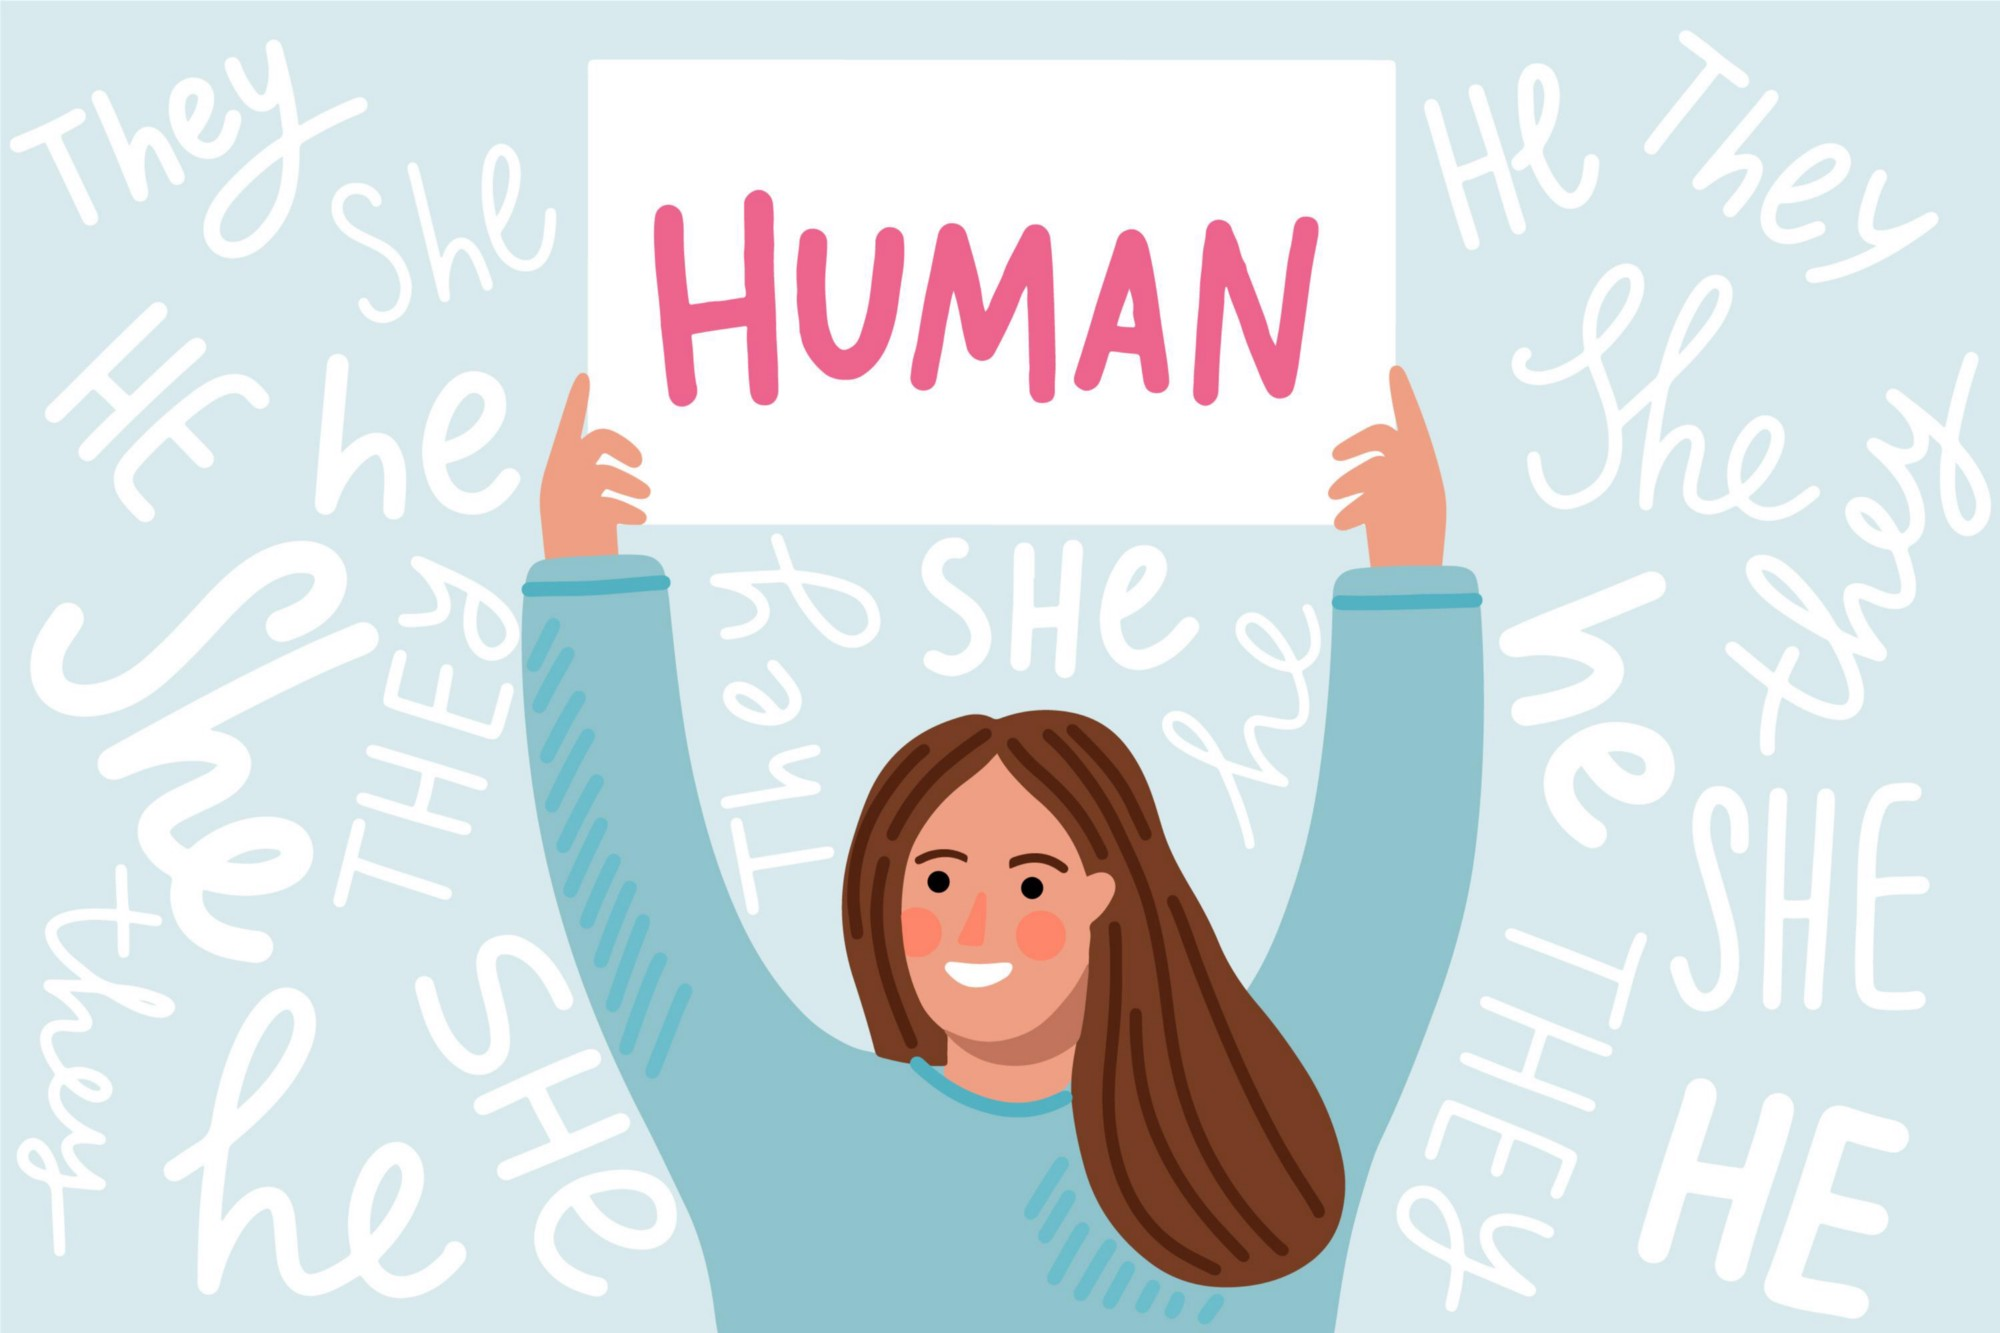 """Woman holding up a sign that says """"Human"""" while the background says """"She, He, They"""""""